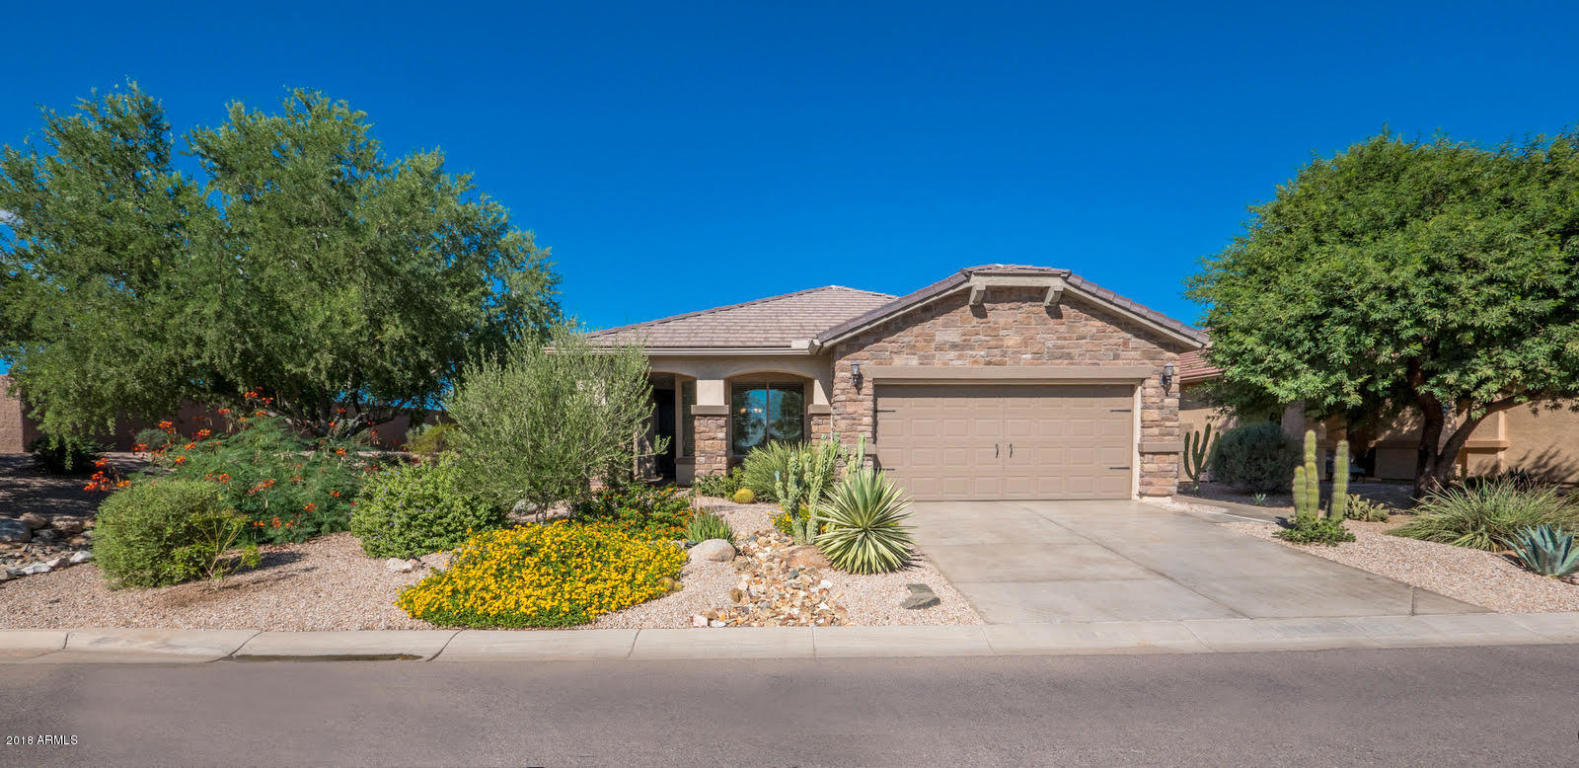 Photo for 30548 N Bismark Street, San Tan Valley, AZ 85143 (MLS # 5833318)